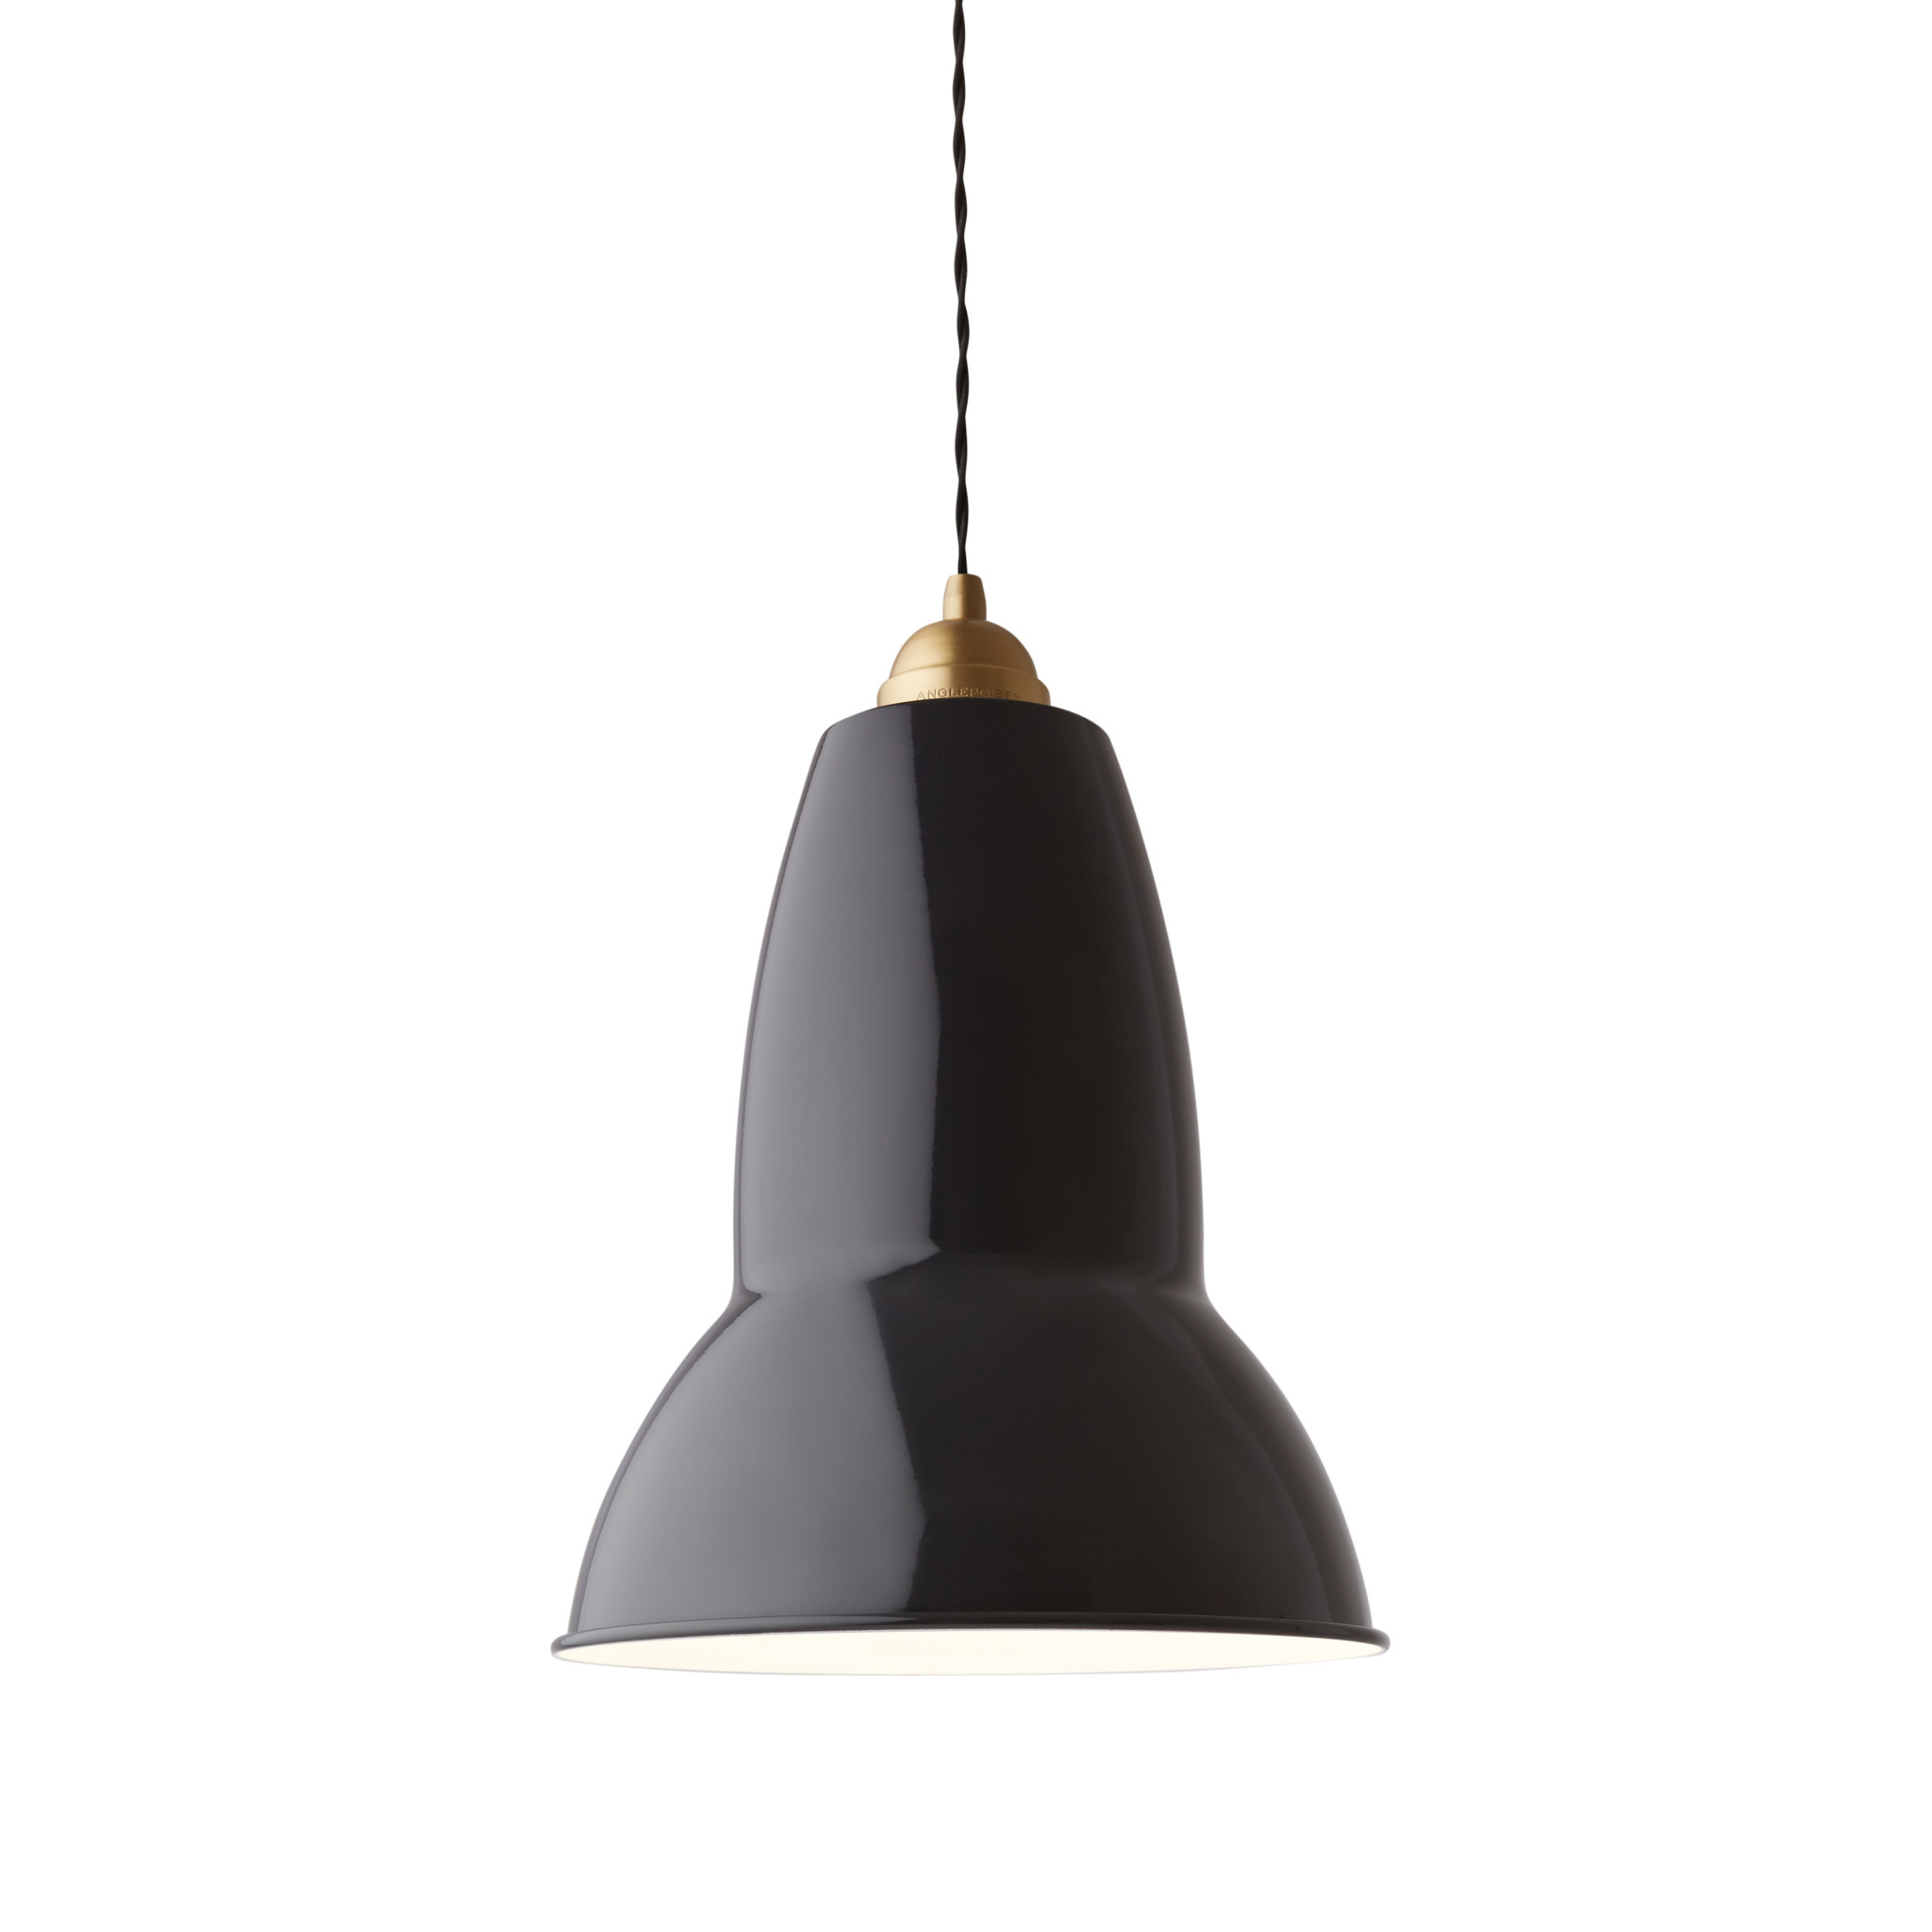 Anglepoise PREORDER Original 1227 Maxi Pendant Lamp - Jet Black with Brass